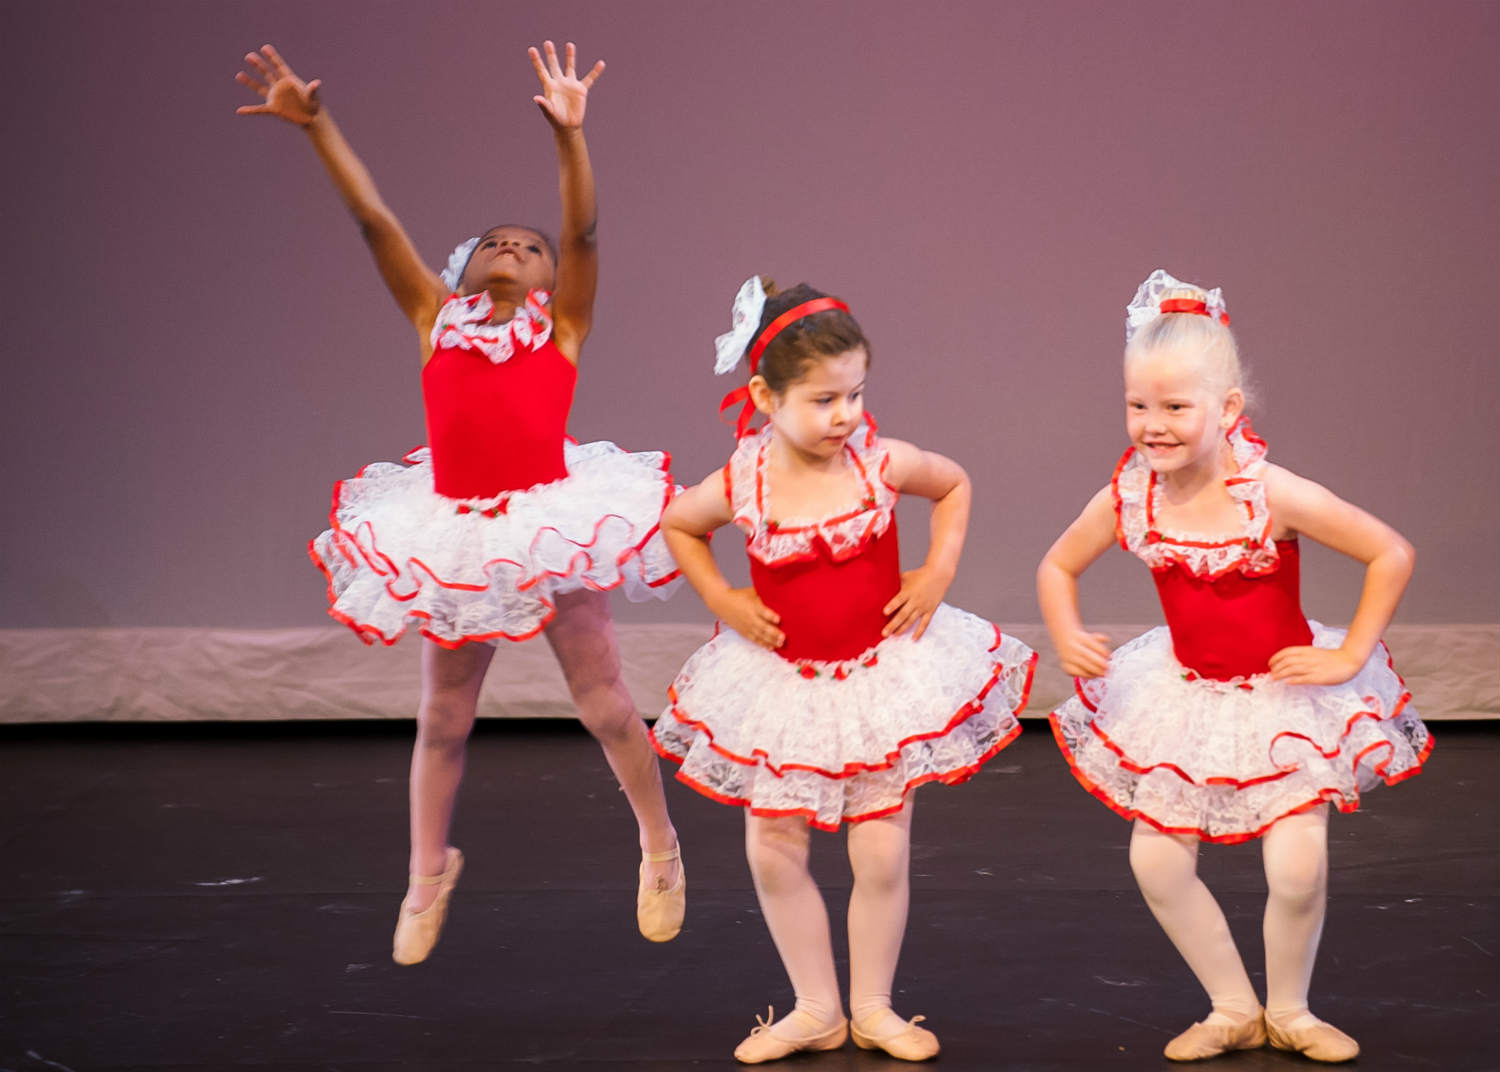 ballet performace on stage